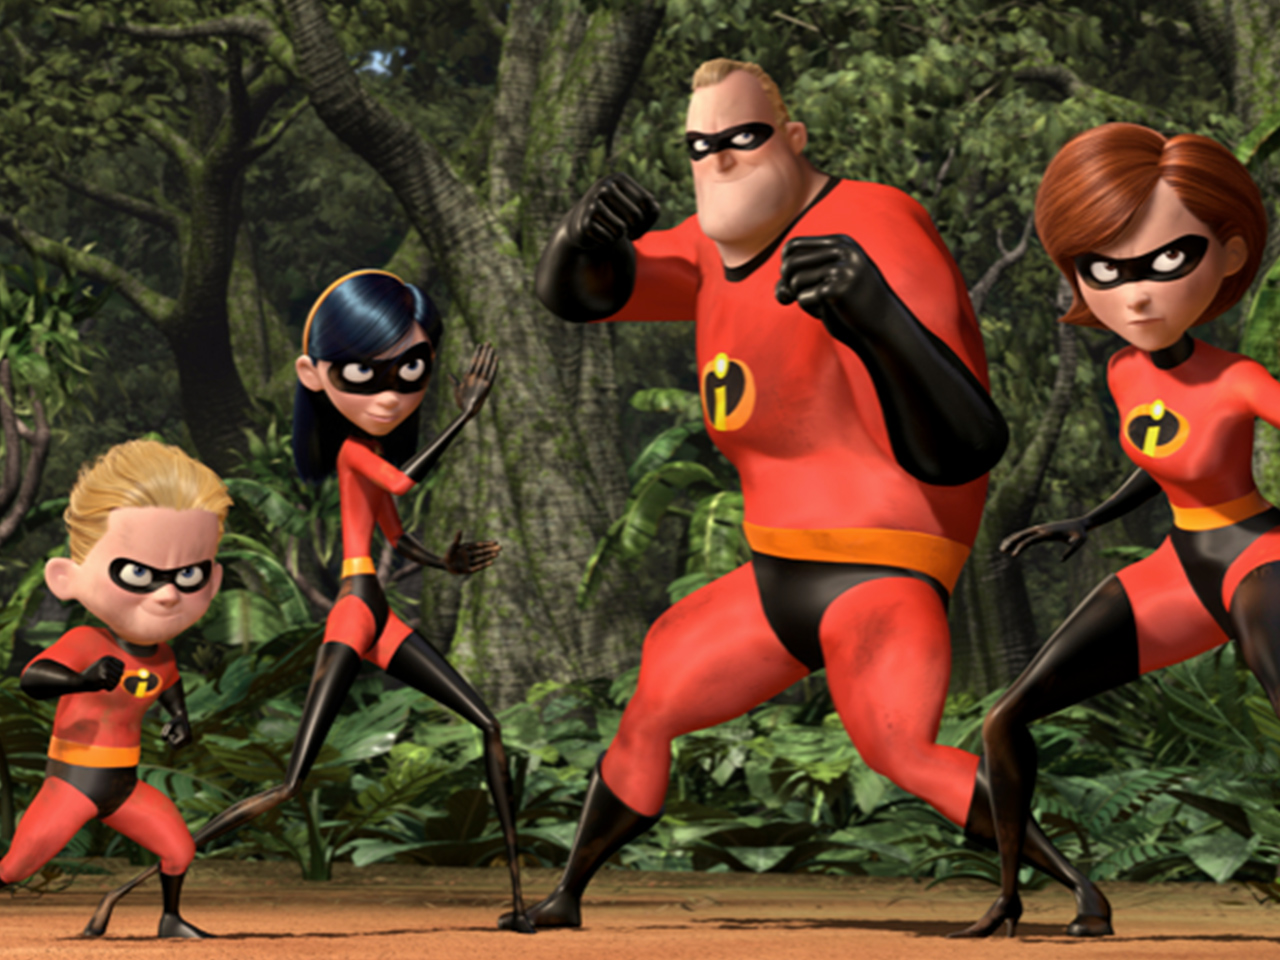 A still from the animated kids' movie The Incredibles